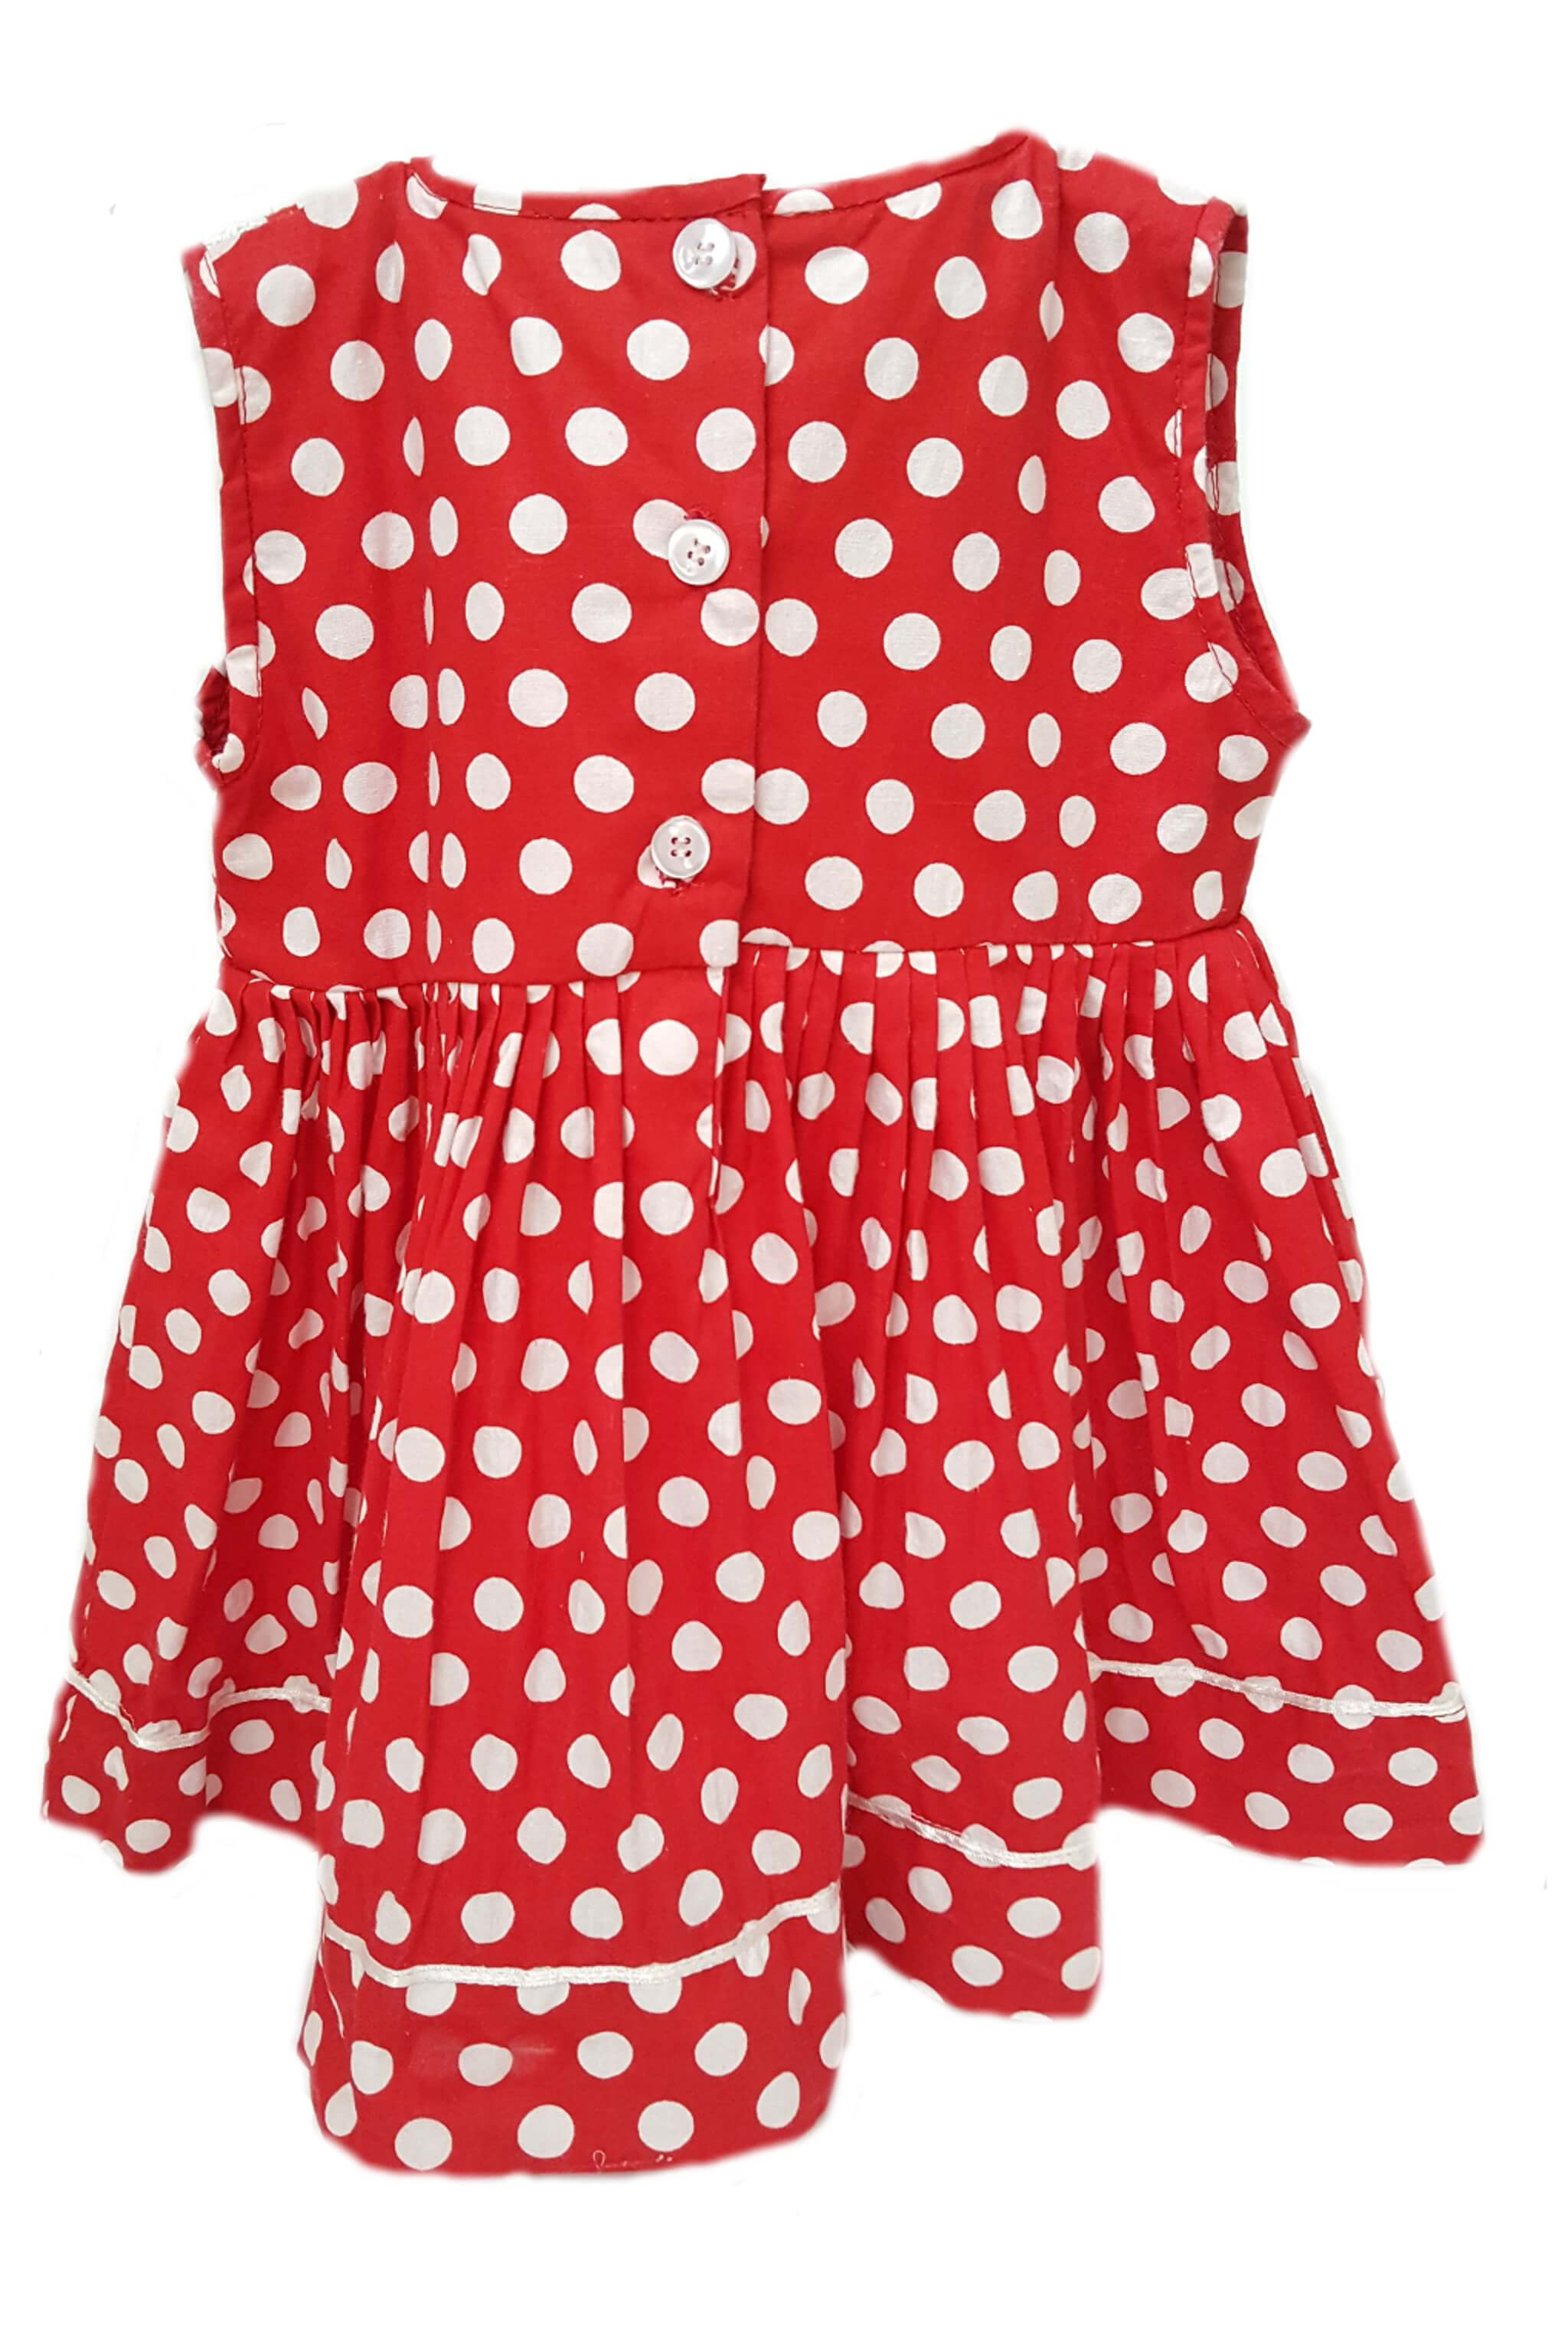 Back of red polka dot baby girl dress with button back